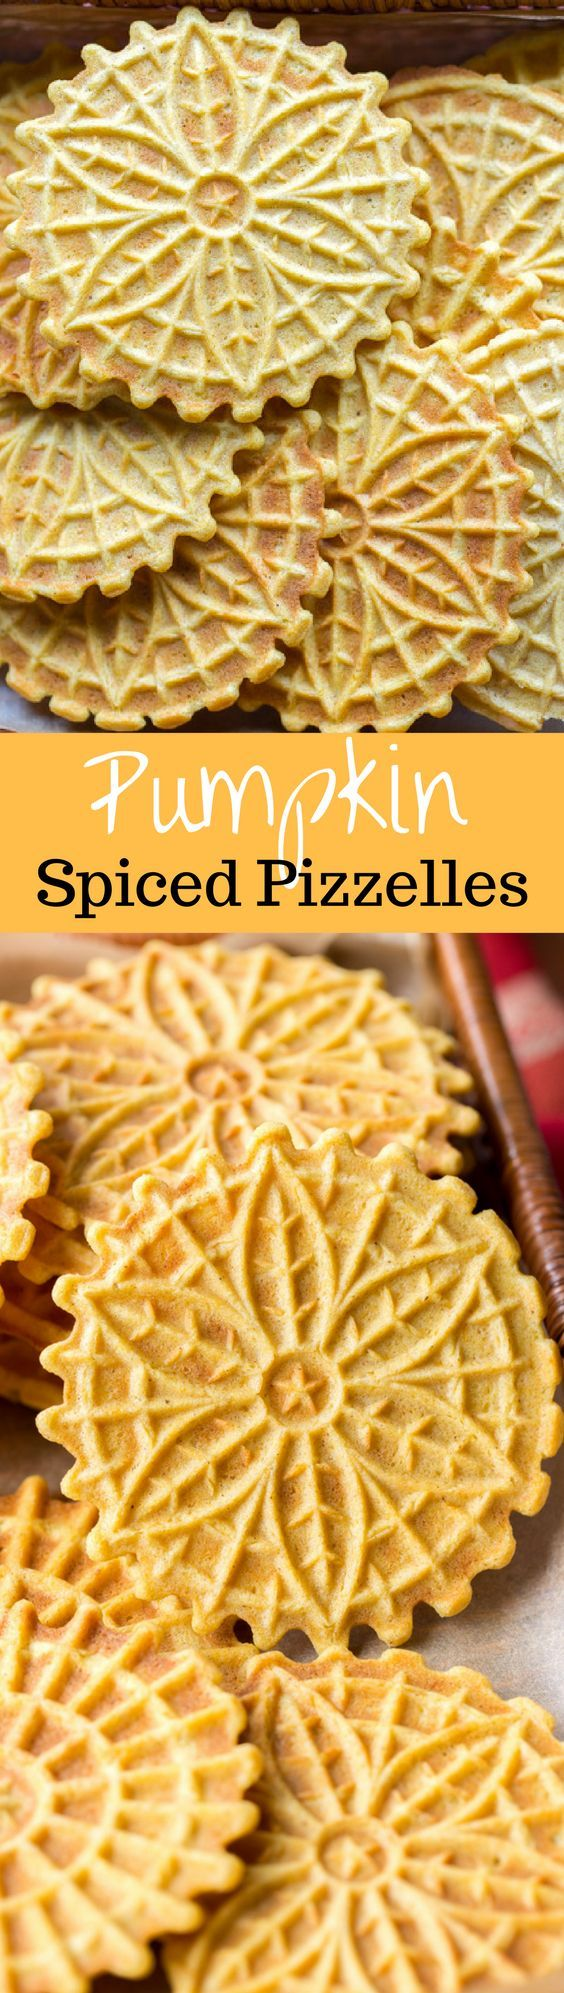 Pumpkin Spiced Pizzelles ~ pumpkin puree and pumpkin pie spice flavor this simple little easy-to-make cookie. Great served with ice cream or as an ice cream sandwich. Roll the hot cookie into a cannoli shape then fill with mousse or dip in white chocolate. www.savingdessert...